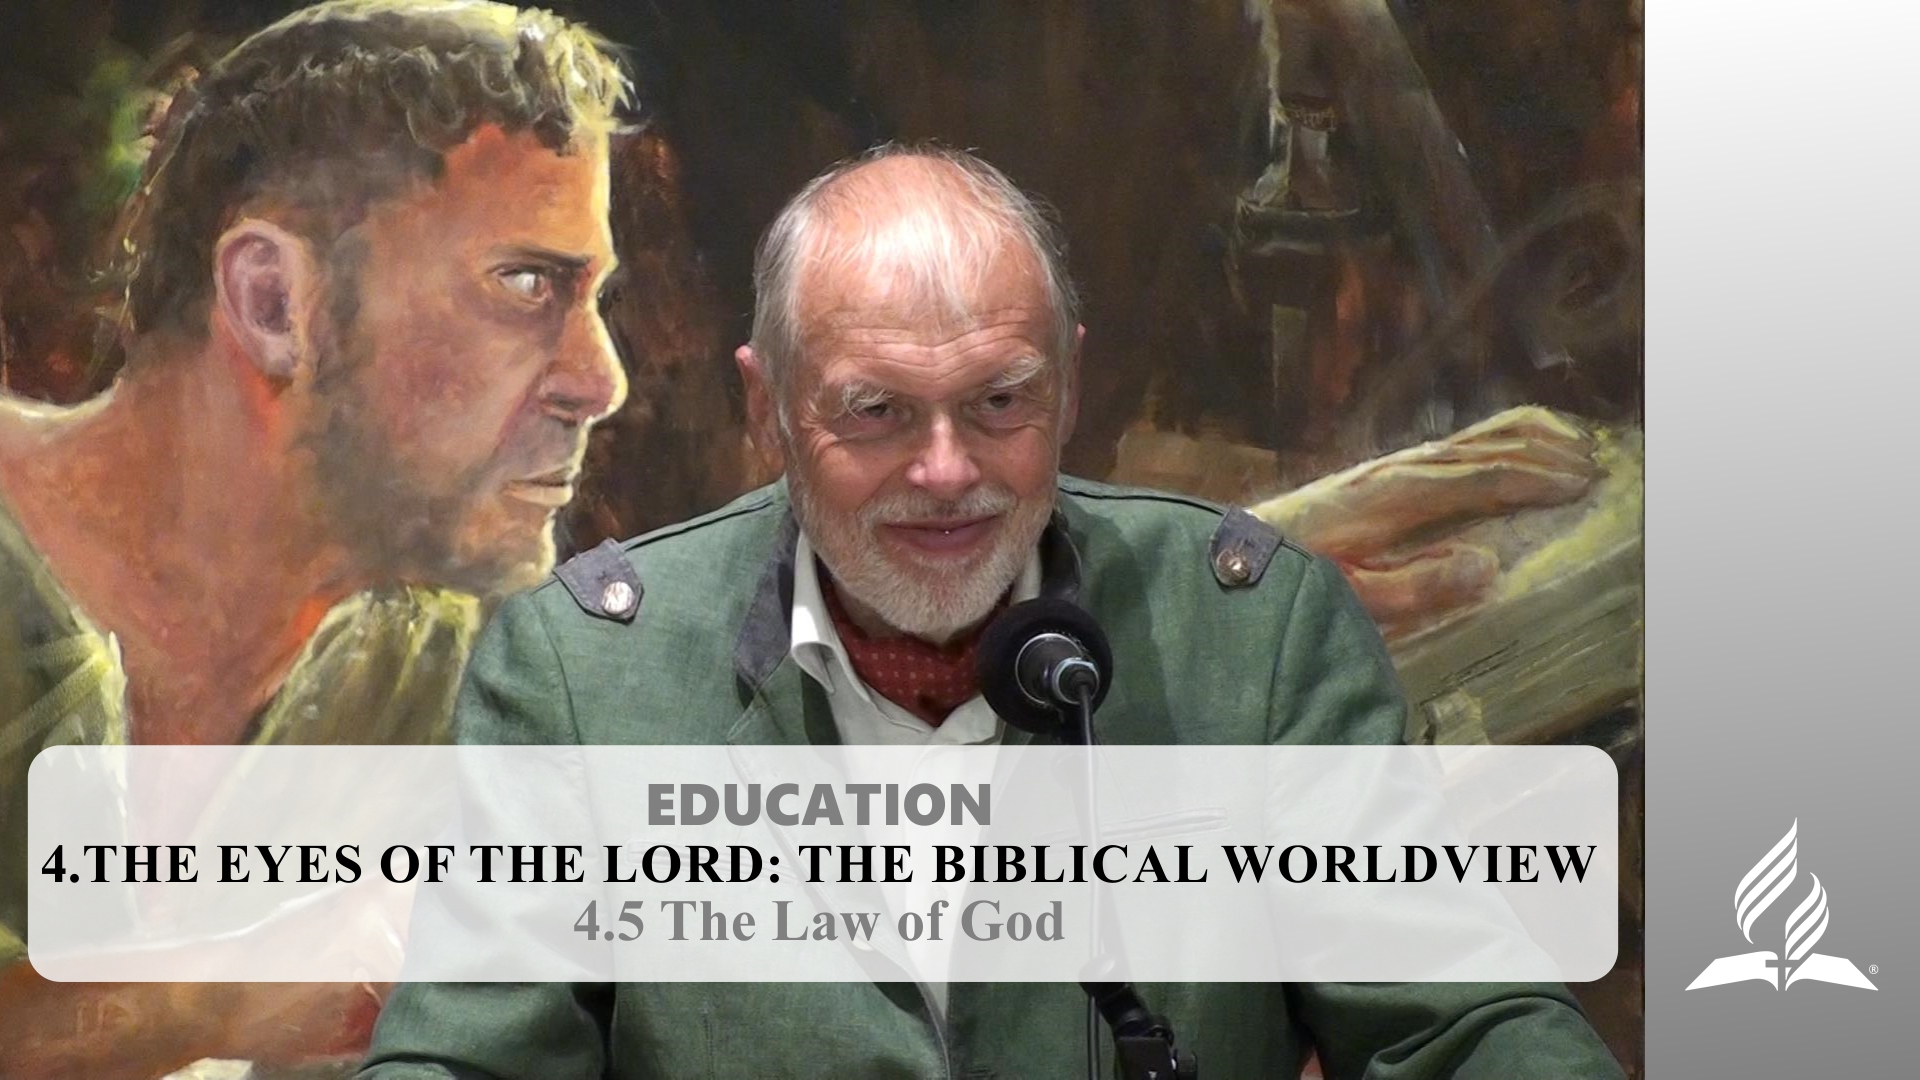 4.5 The Law of God – THE EYES OF THE LORD-THE BIBLICAL WORLDVIEW | Pastor Kurt Piesslinger, M.A.